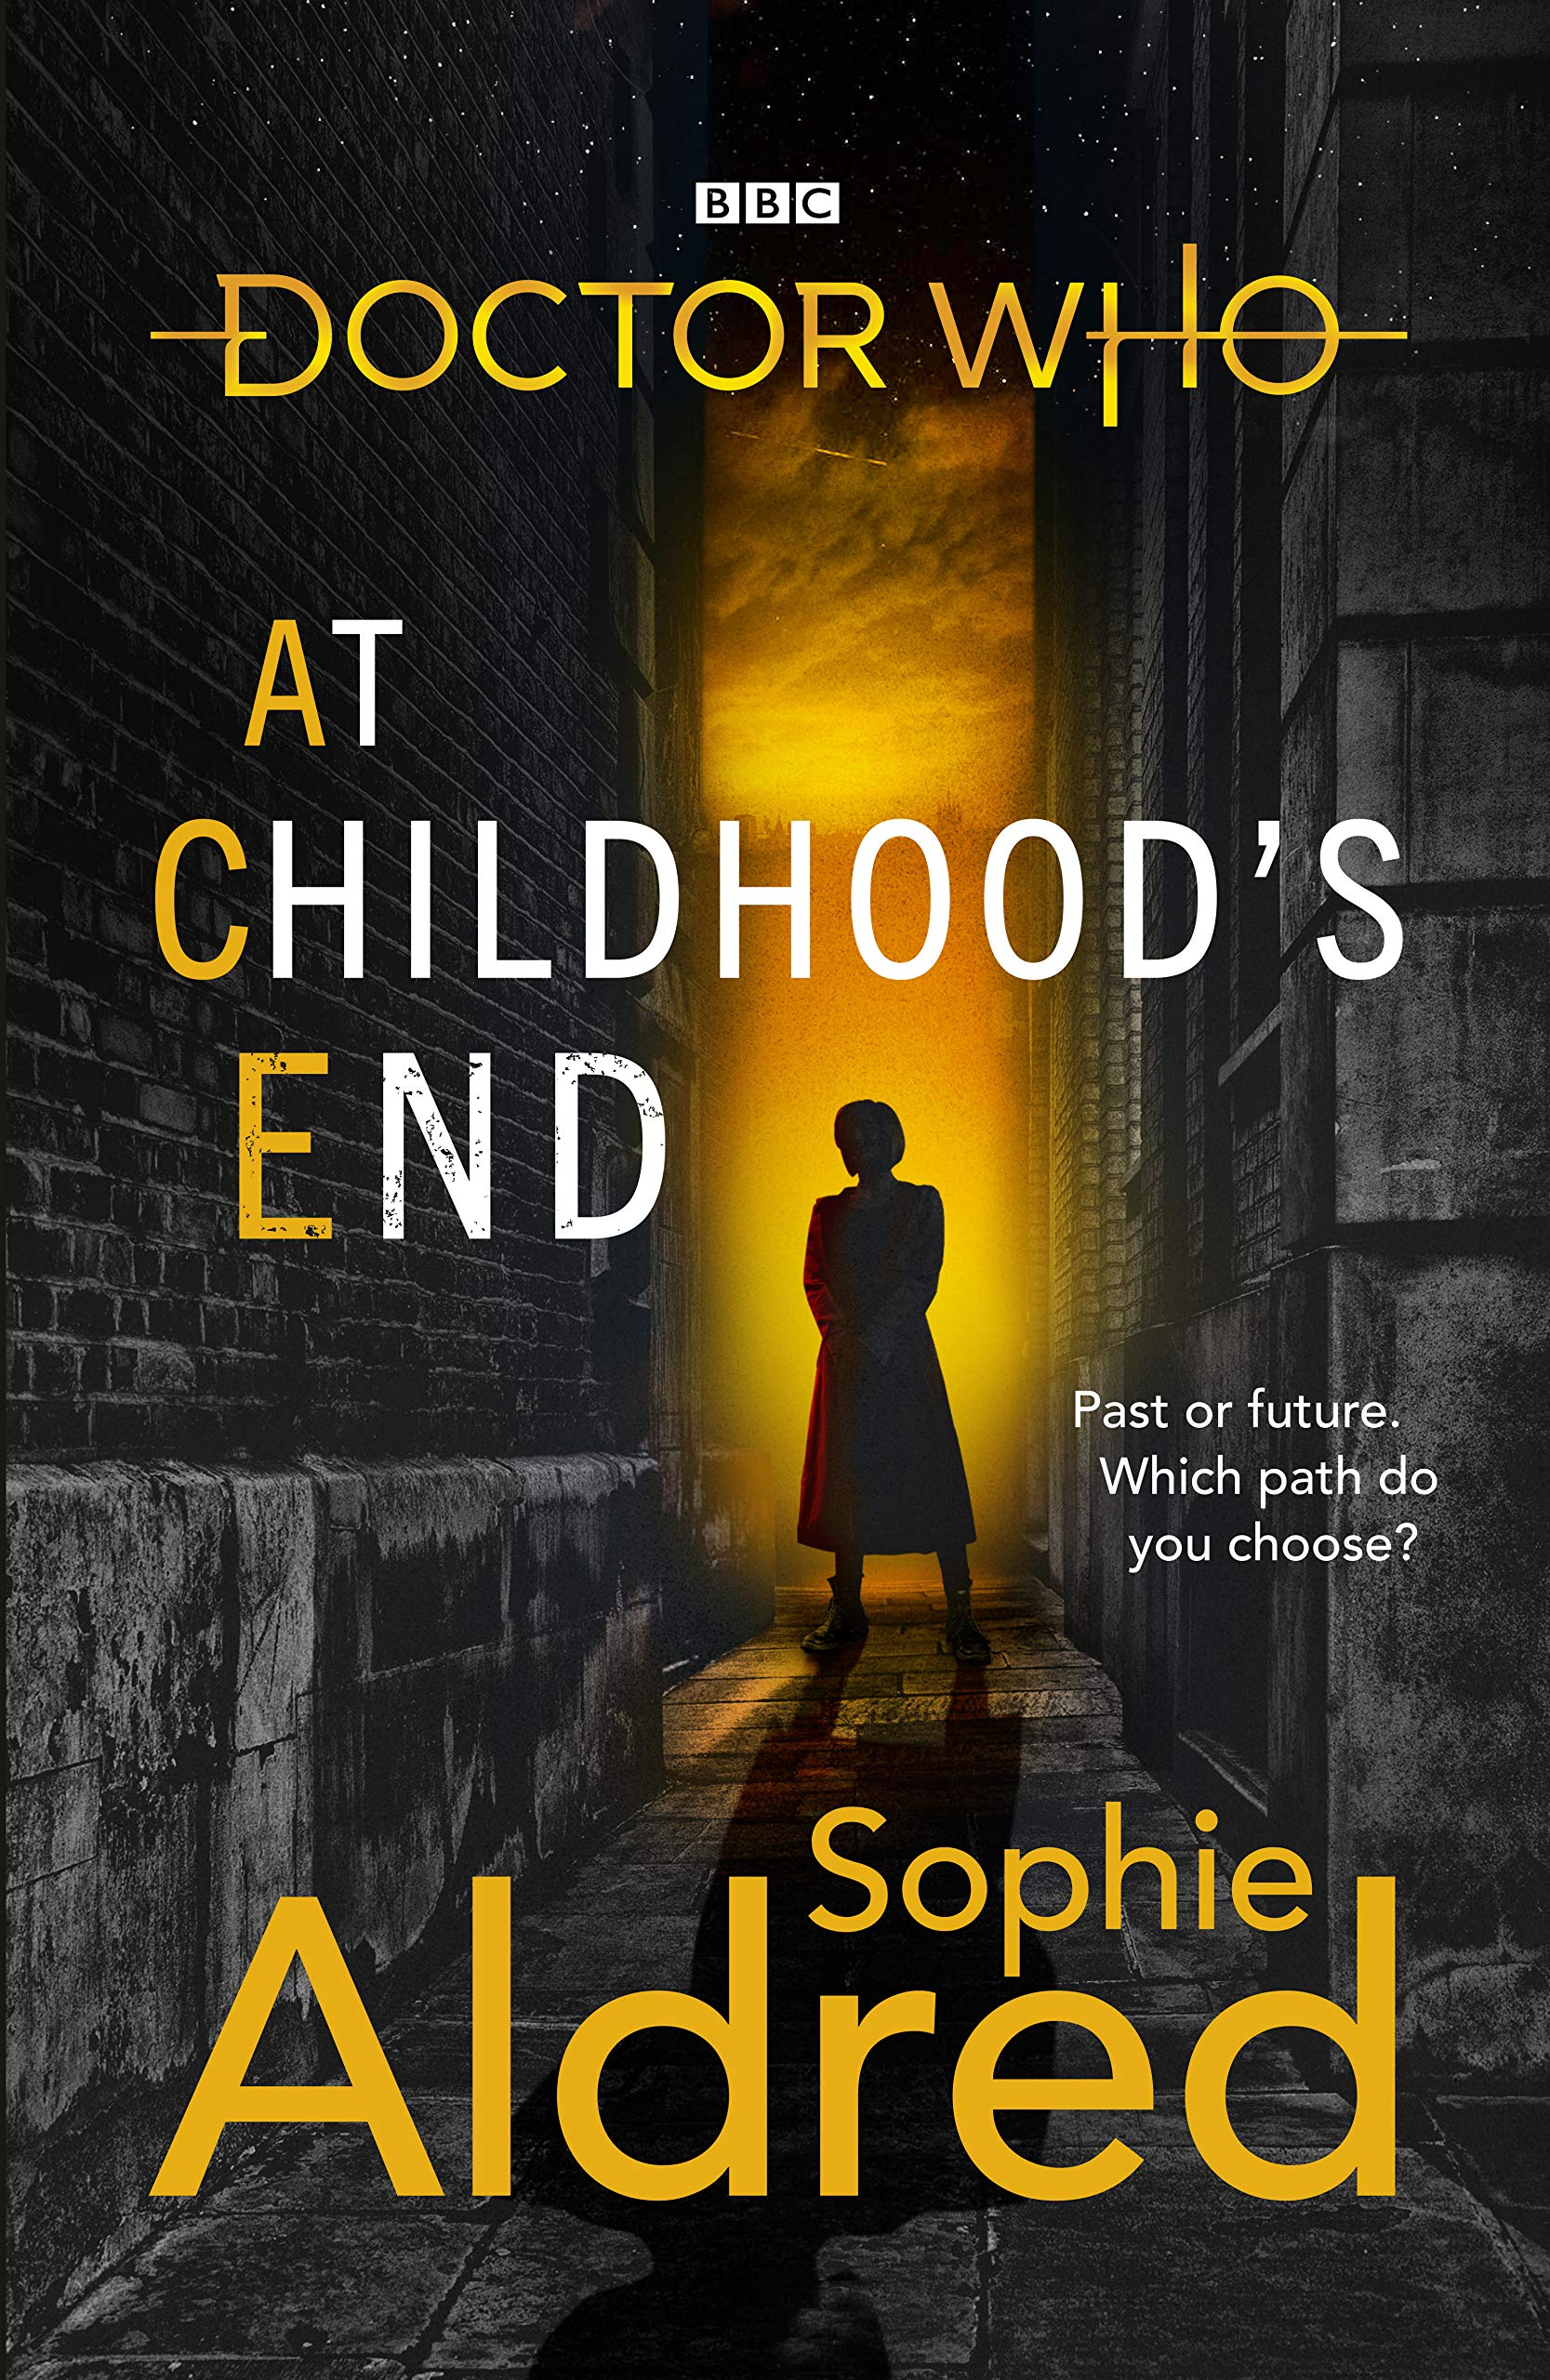 Doctor Who: At Childhood's End by Sophie Aldred